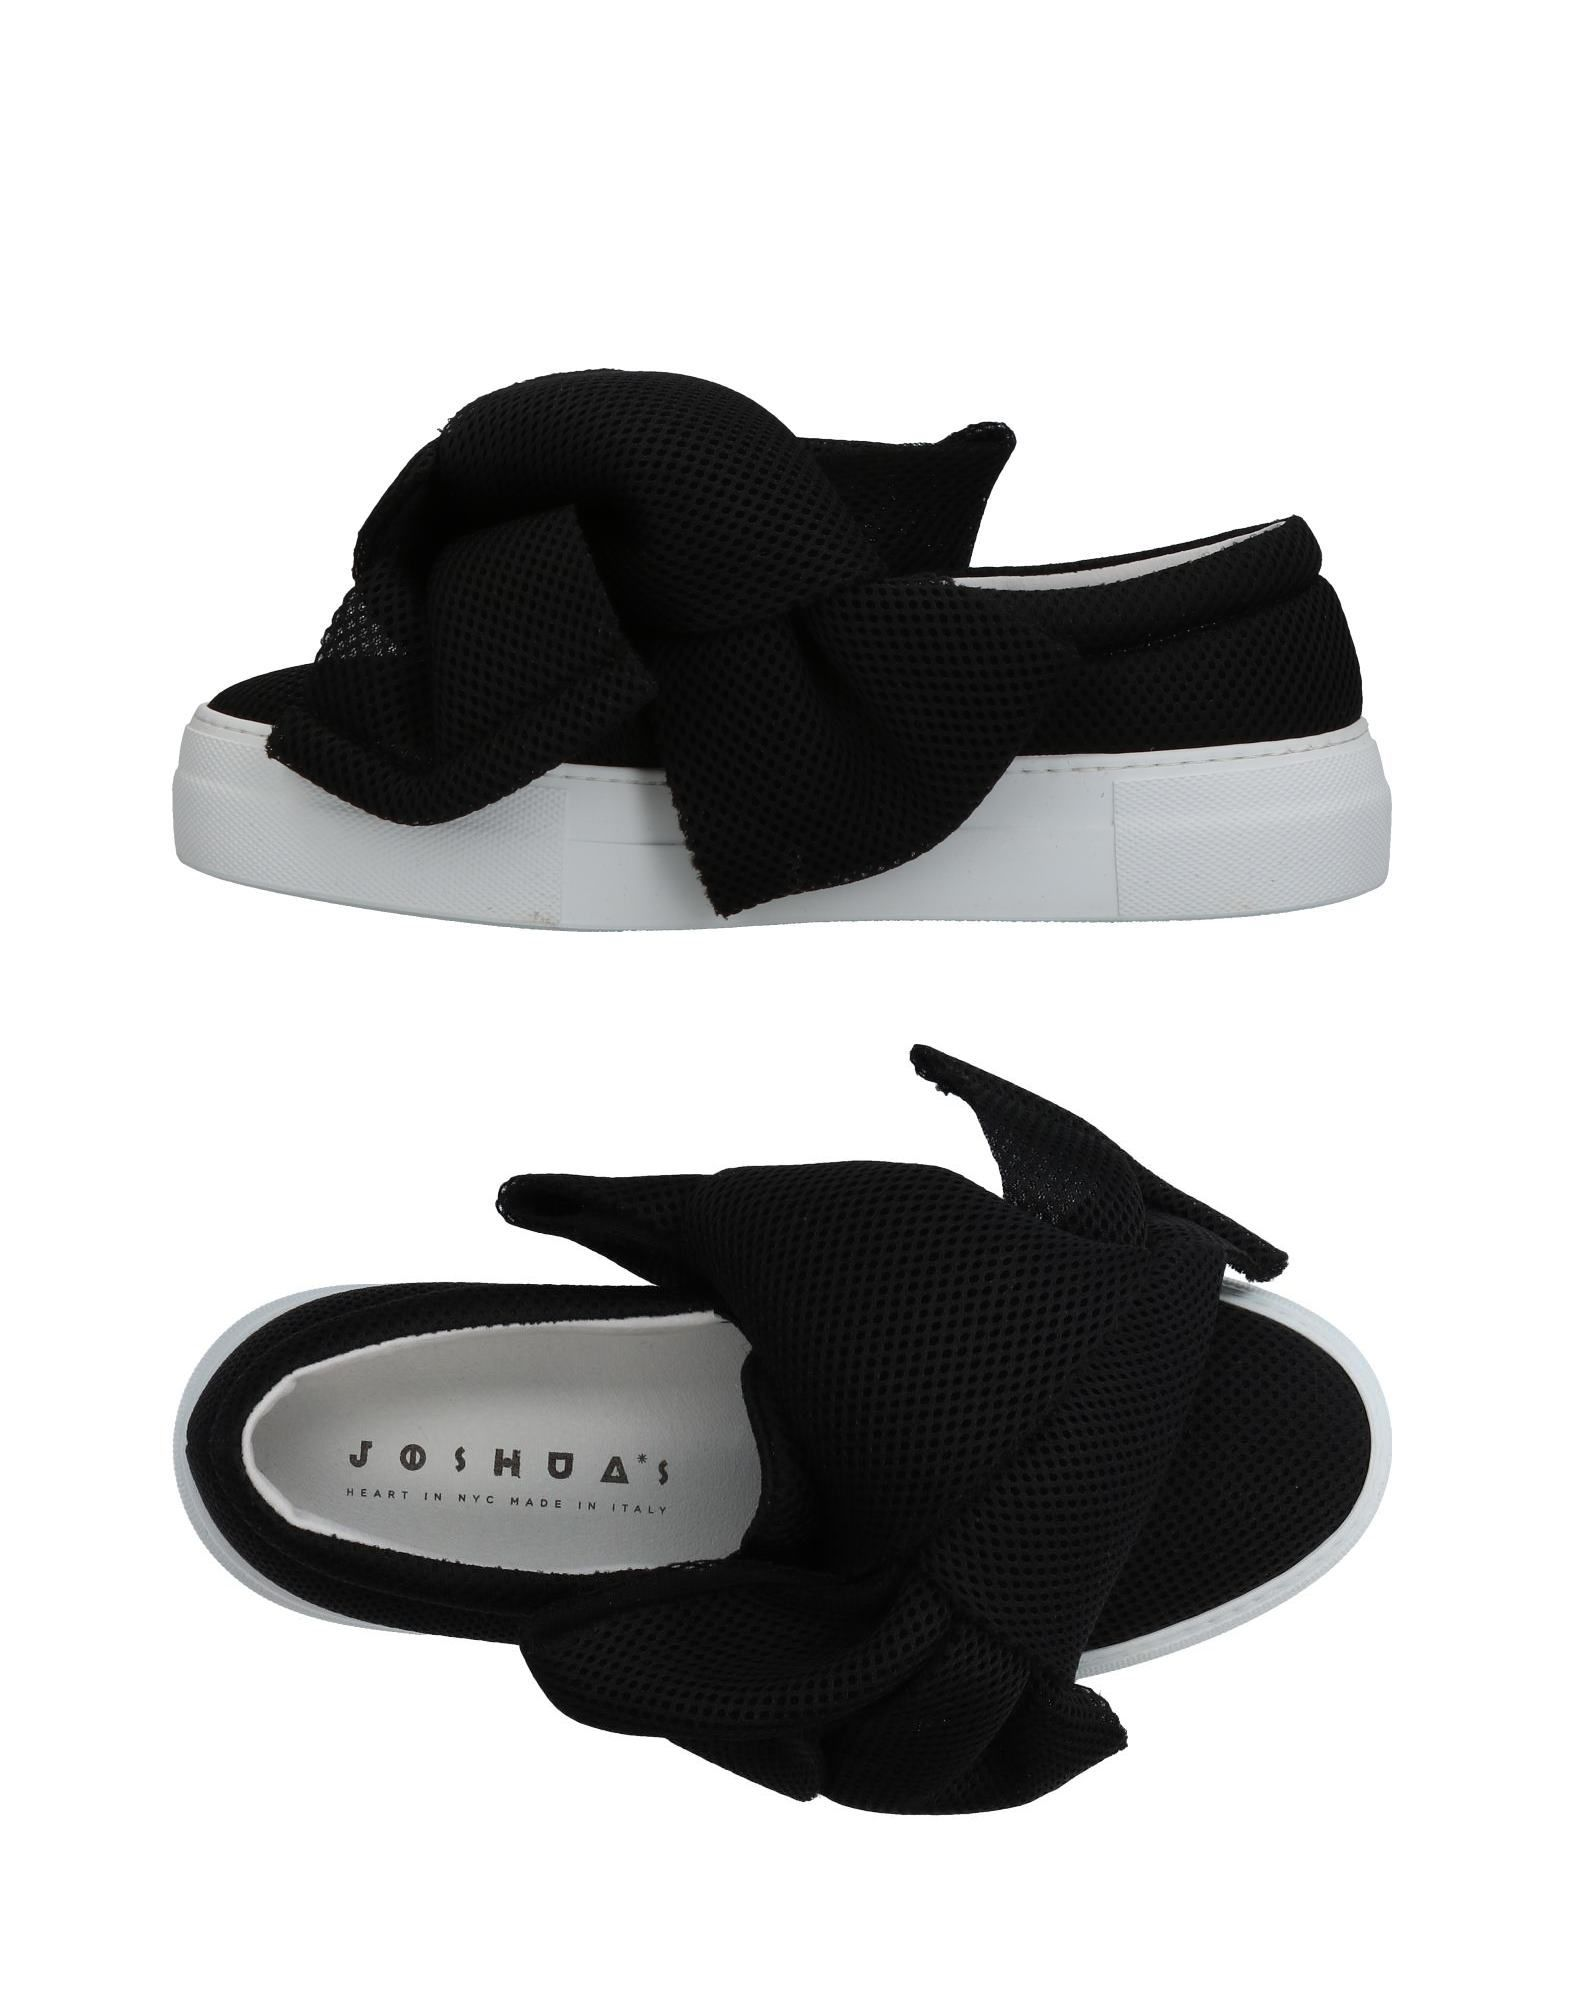 Joshua*S Sneakers Sneakers Sneakers - Women Joshua*S Sneakers online on  United Kingdom - 11328844UA 3e62f2